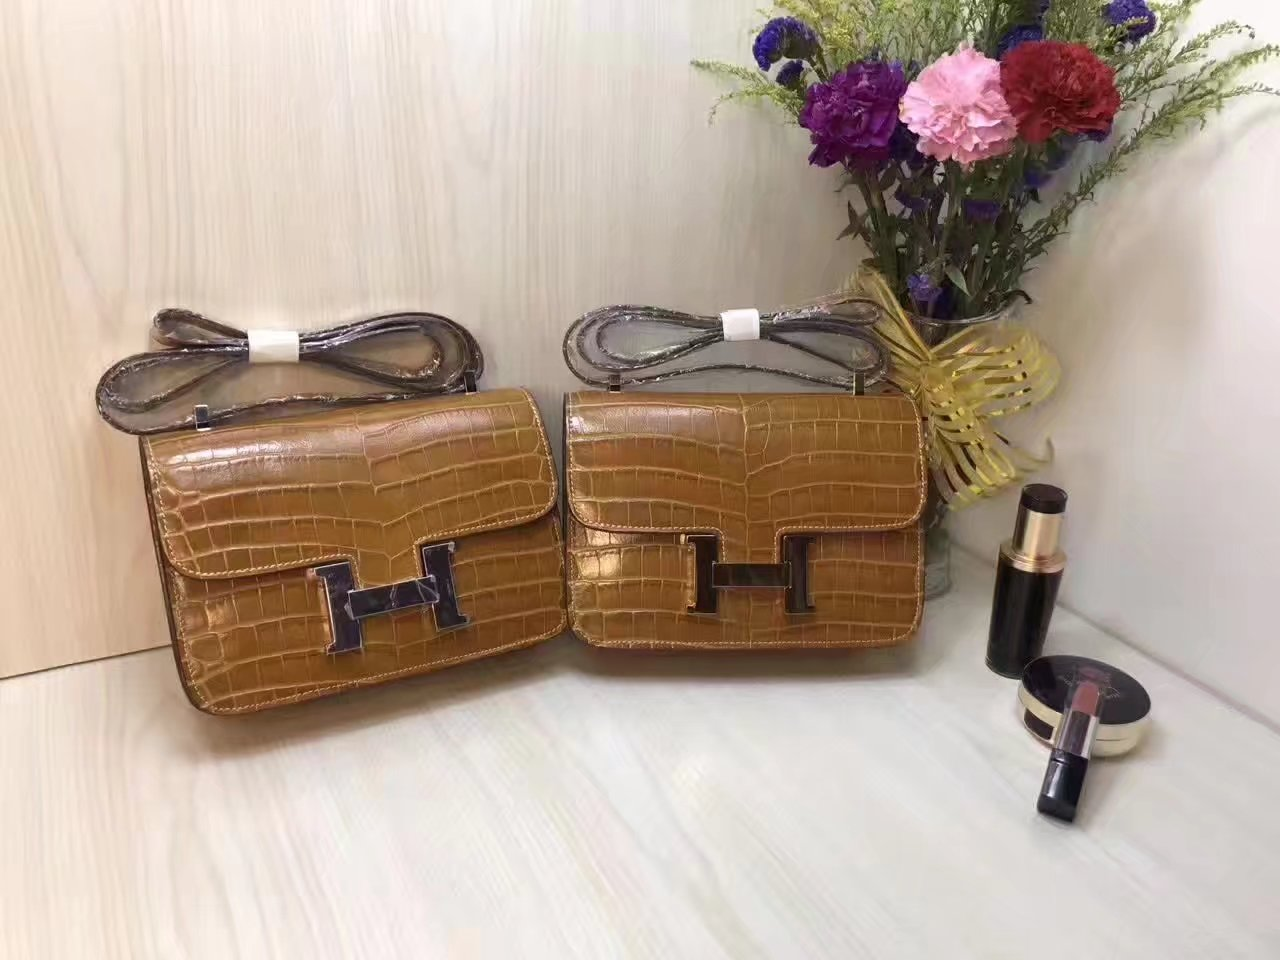 Hermes 23cm Constance Shoulder Bag Crocodile Stripe Chocolate With Gold And Silver